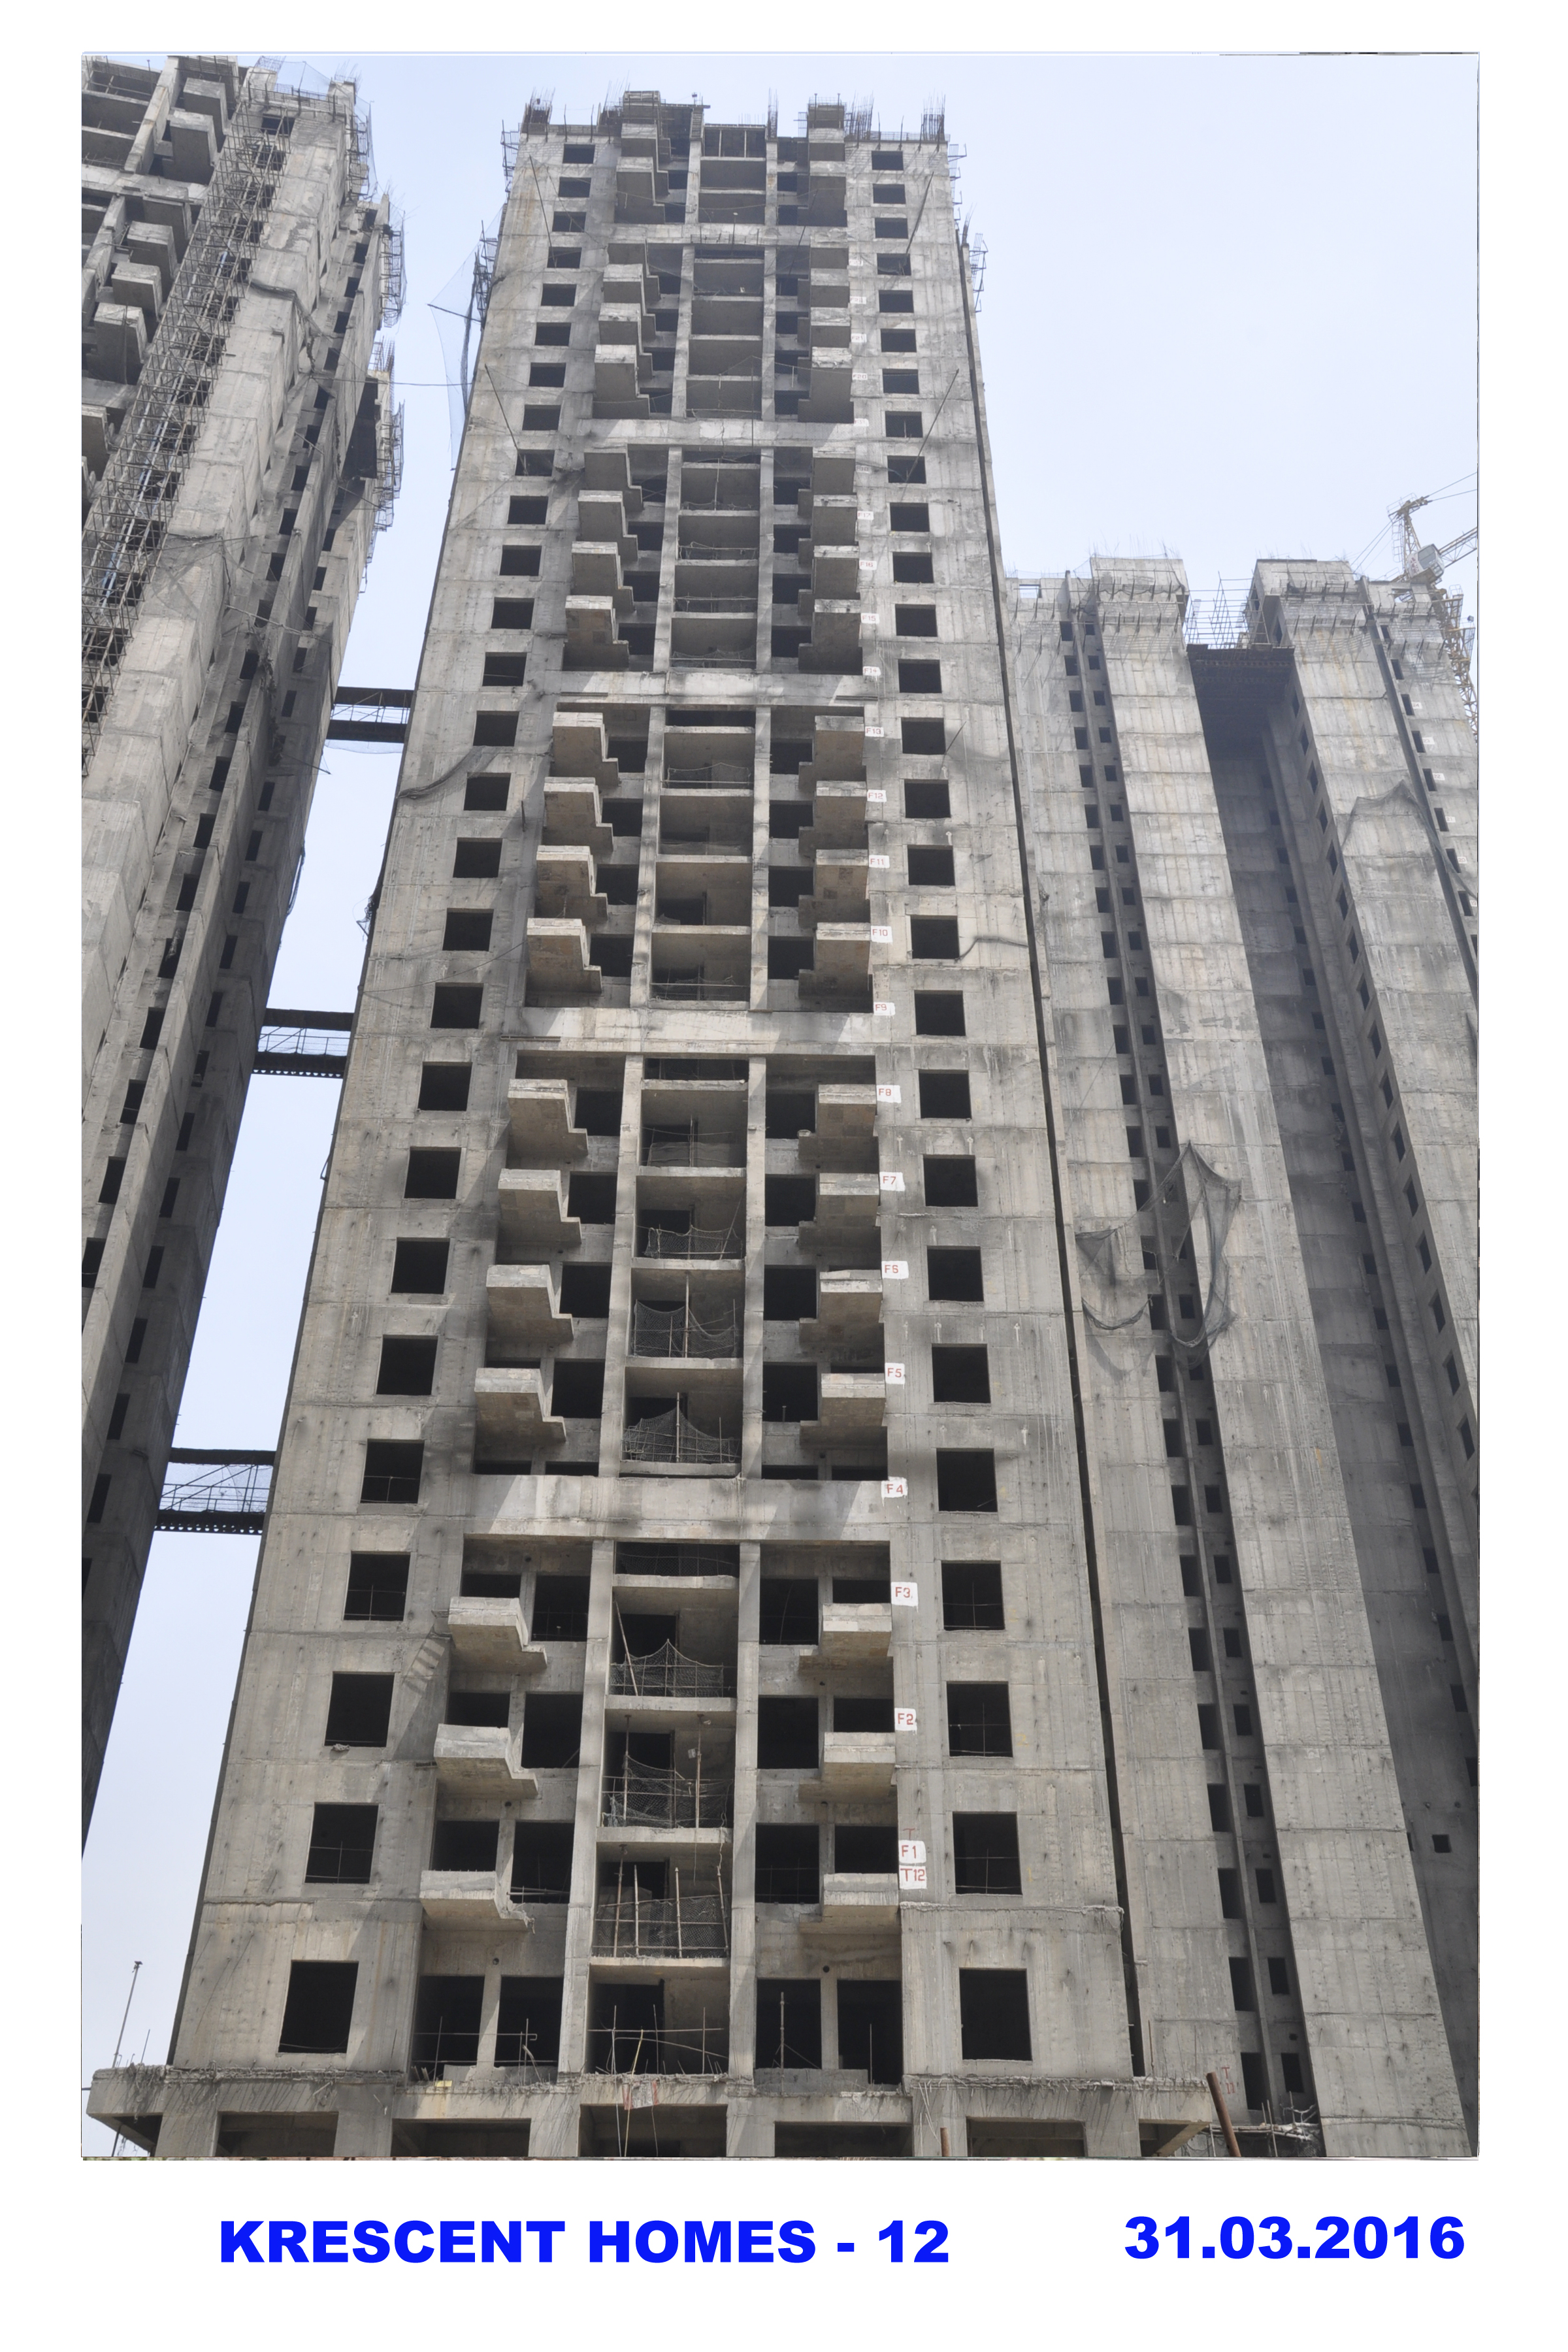 Krescent Homes Tower - 12